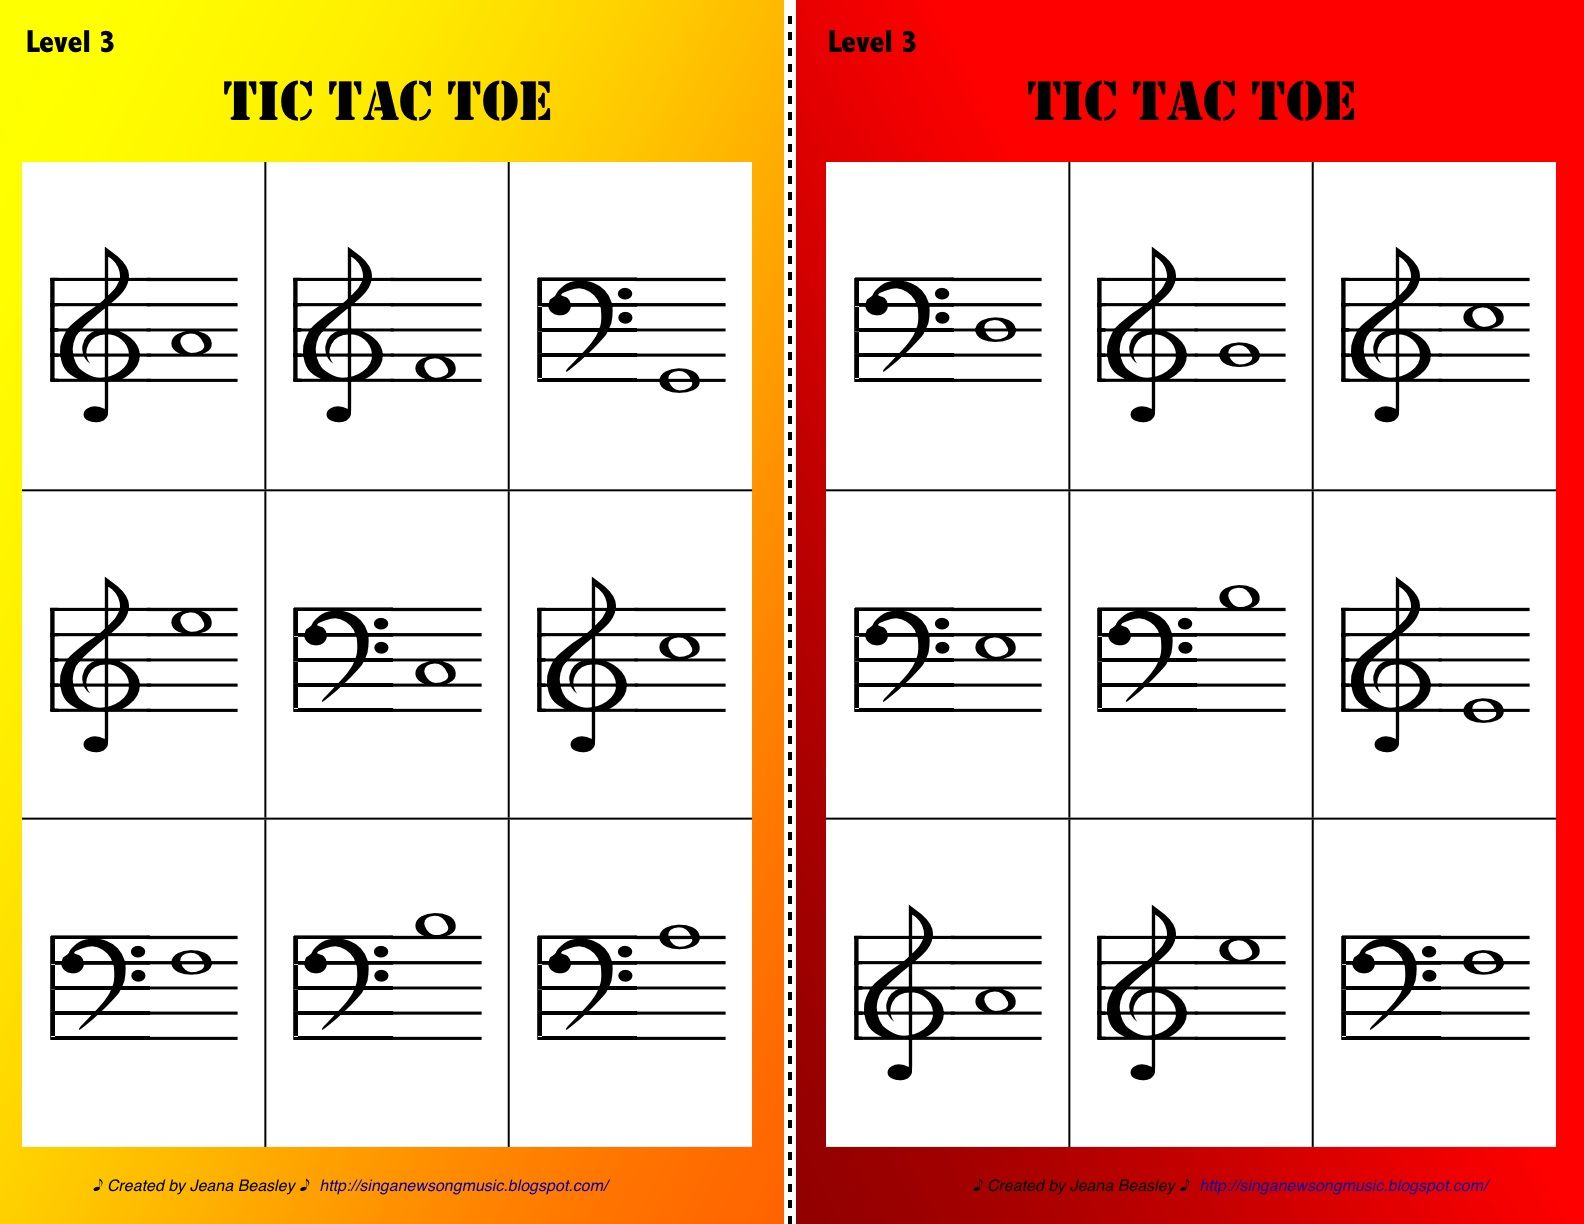 Sing A New Song Tic Tac Toe Levels 1 3